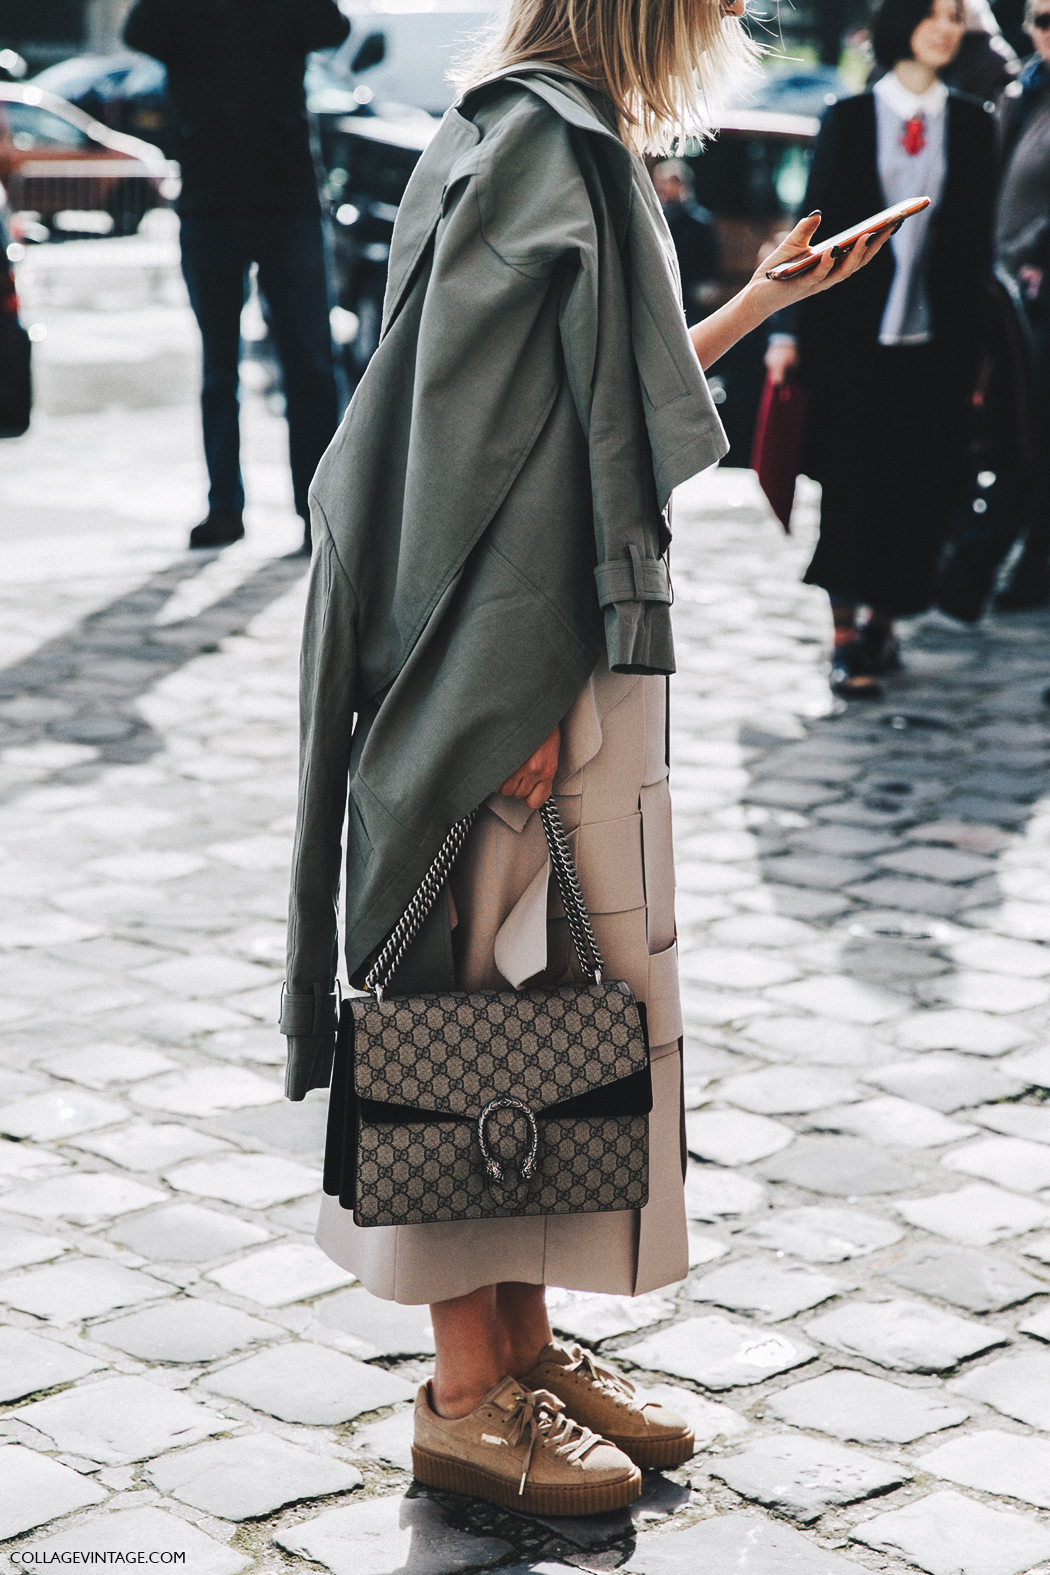 PFW-Paris_Fashion_Week_Fall_2016-Street_Style-Collage_Vintage-gucci_bag-midi_Skirt-Parka-